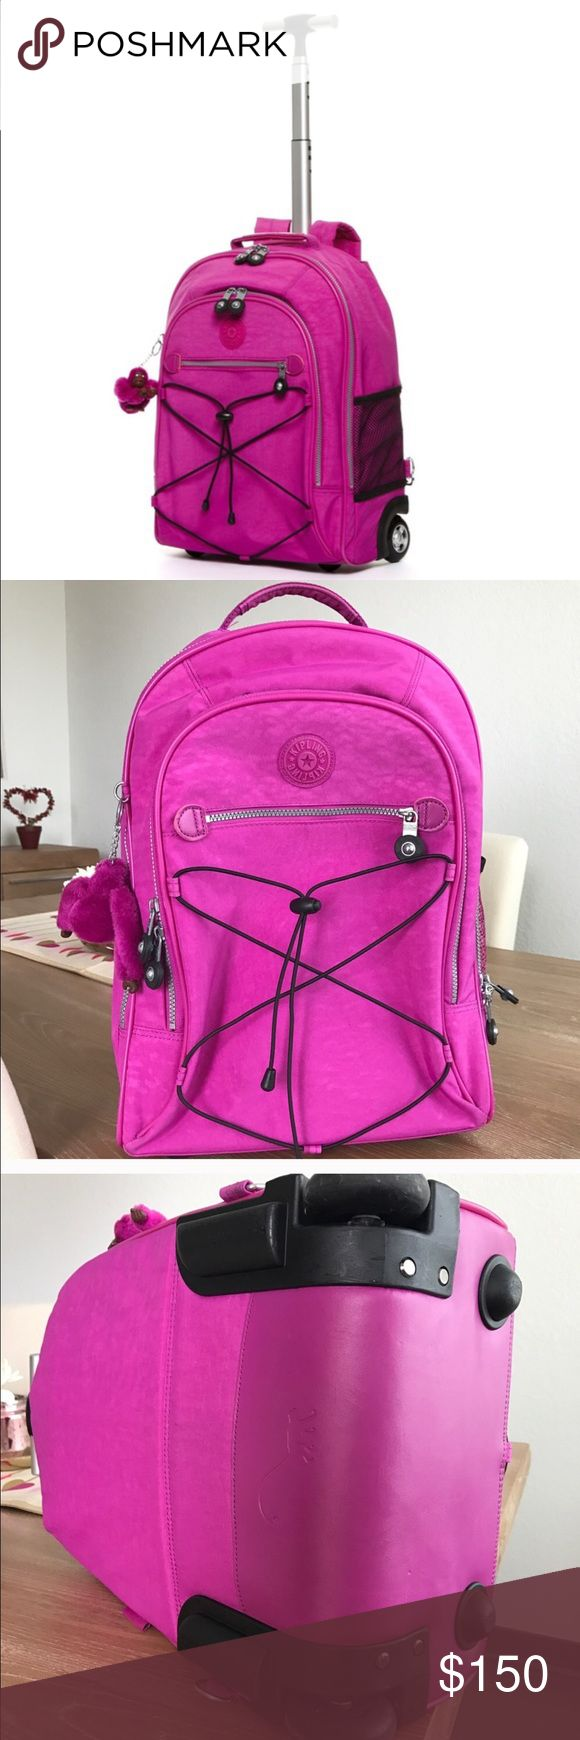 """🚨SALE🚨SAULITO KIPLING ROLLING BACKPACK Excellent conditions. Used only once. Color Pink Orchid (sold-out). Airline CarryOn Acceptable. Dimension: 13""""-17""""-8"""". Weights 5lbs.(I will pay extra shipping to send it to you).Will come with warranty tags. Hide away padded backpack straps. U-shape zipped, 1 interior pocket. Two zipper pockets front. One small mesh pocket. All zipper functionals. No rips or holes. Water resistant.Includes monkey. Retail price $199. NO TRADES. ONLY SERIOUS BUYERS…"""